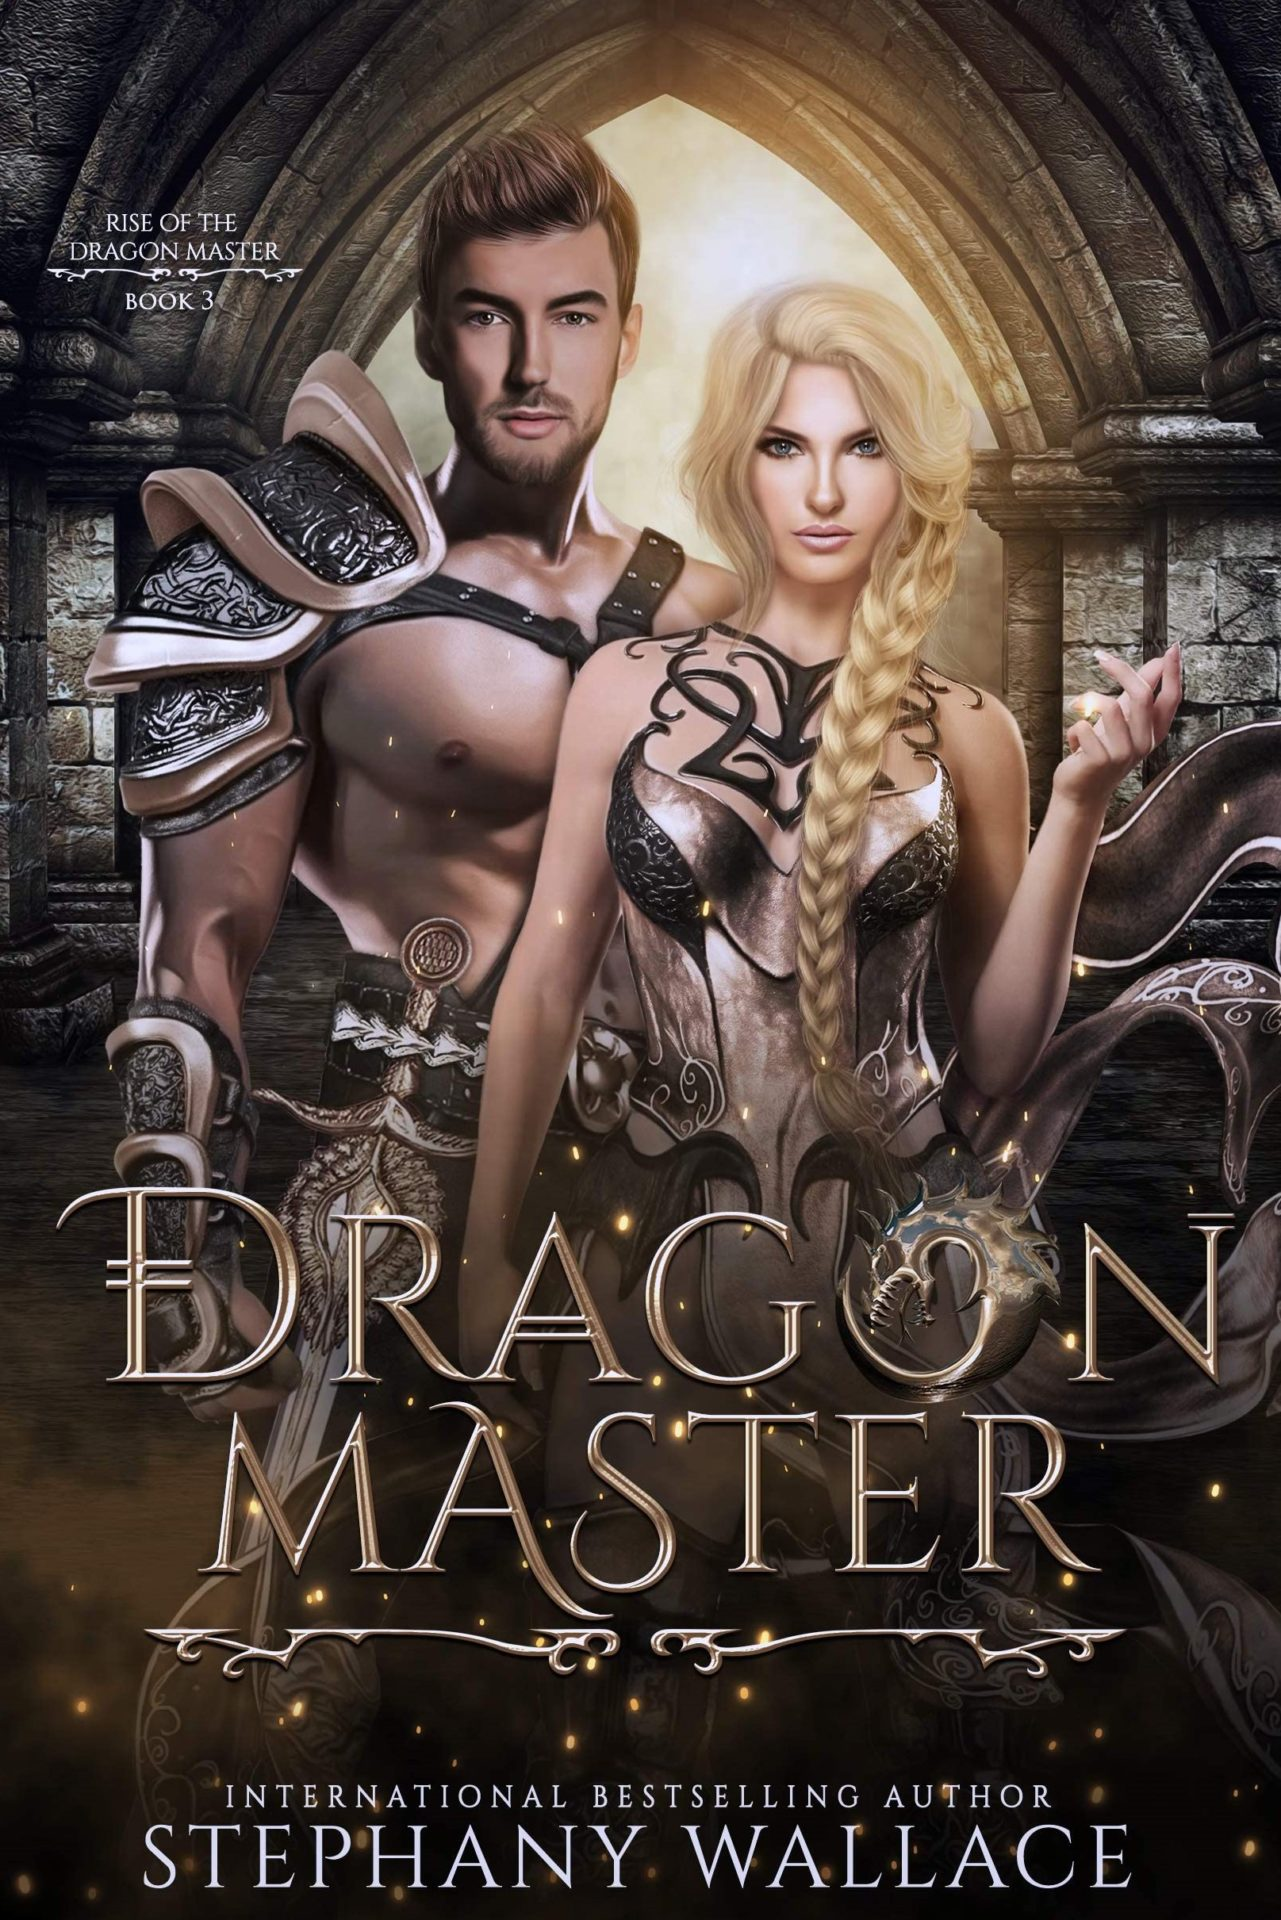 Dragon Master (Rise of the Dragon Master Book 3) – Stephany Wallace